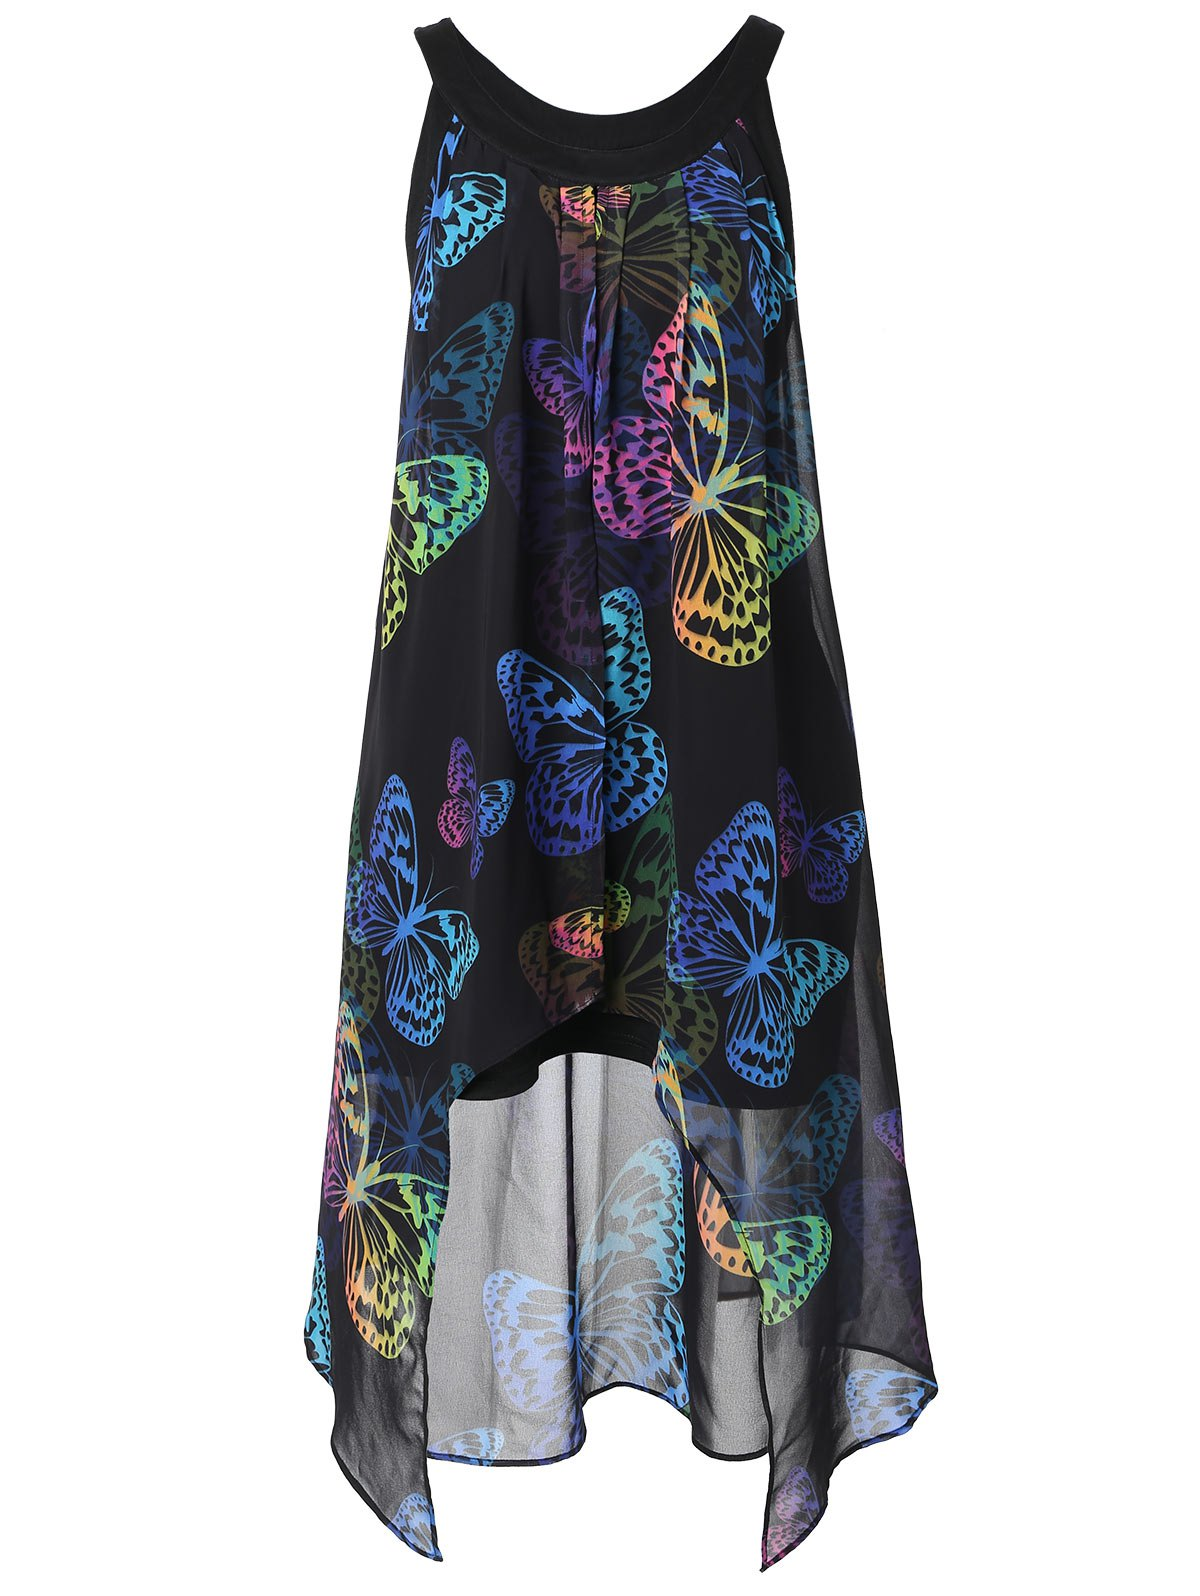 Latest Colorful Butterfly Print Plus Size Sleeveless Blouse